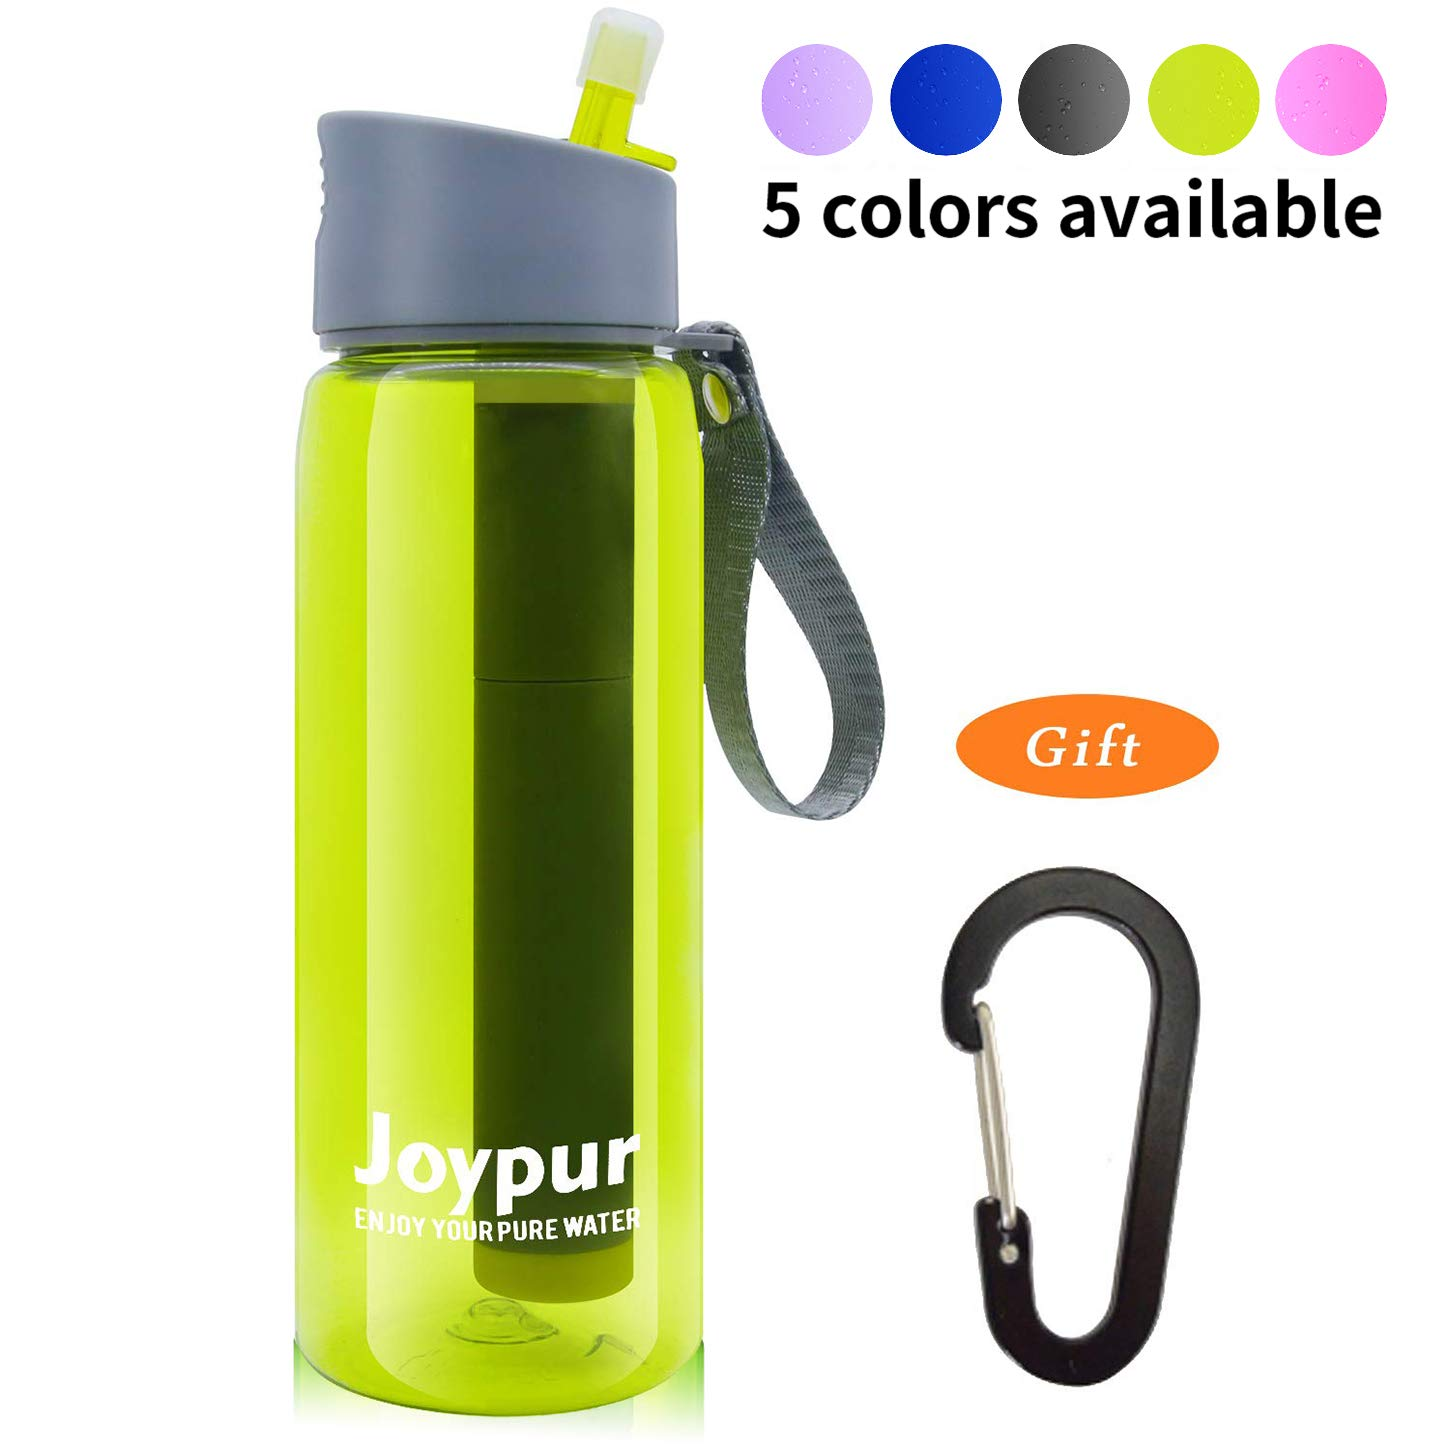 Joypur Outdoor Filtered Water Bottle Camping Water Filter with 3-Stage Integrated Water Purifier for Travel Hiking Backpacking